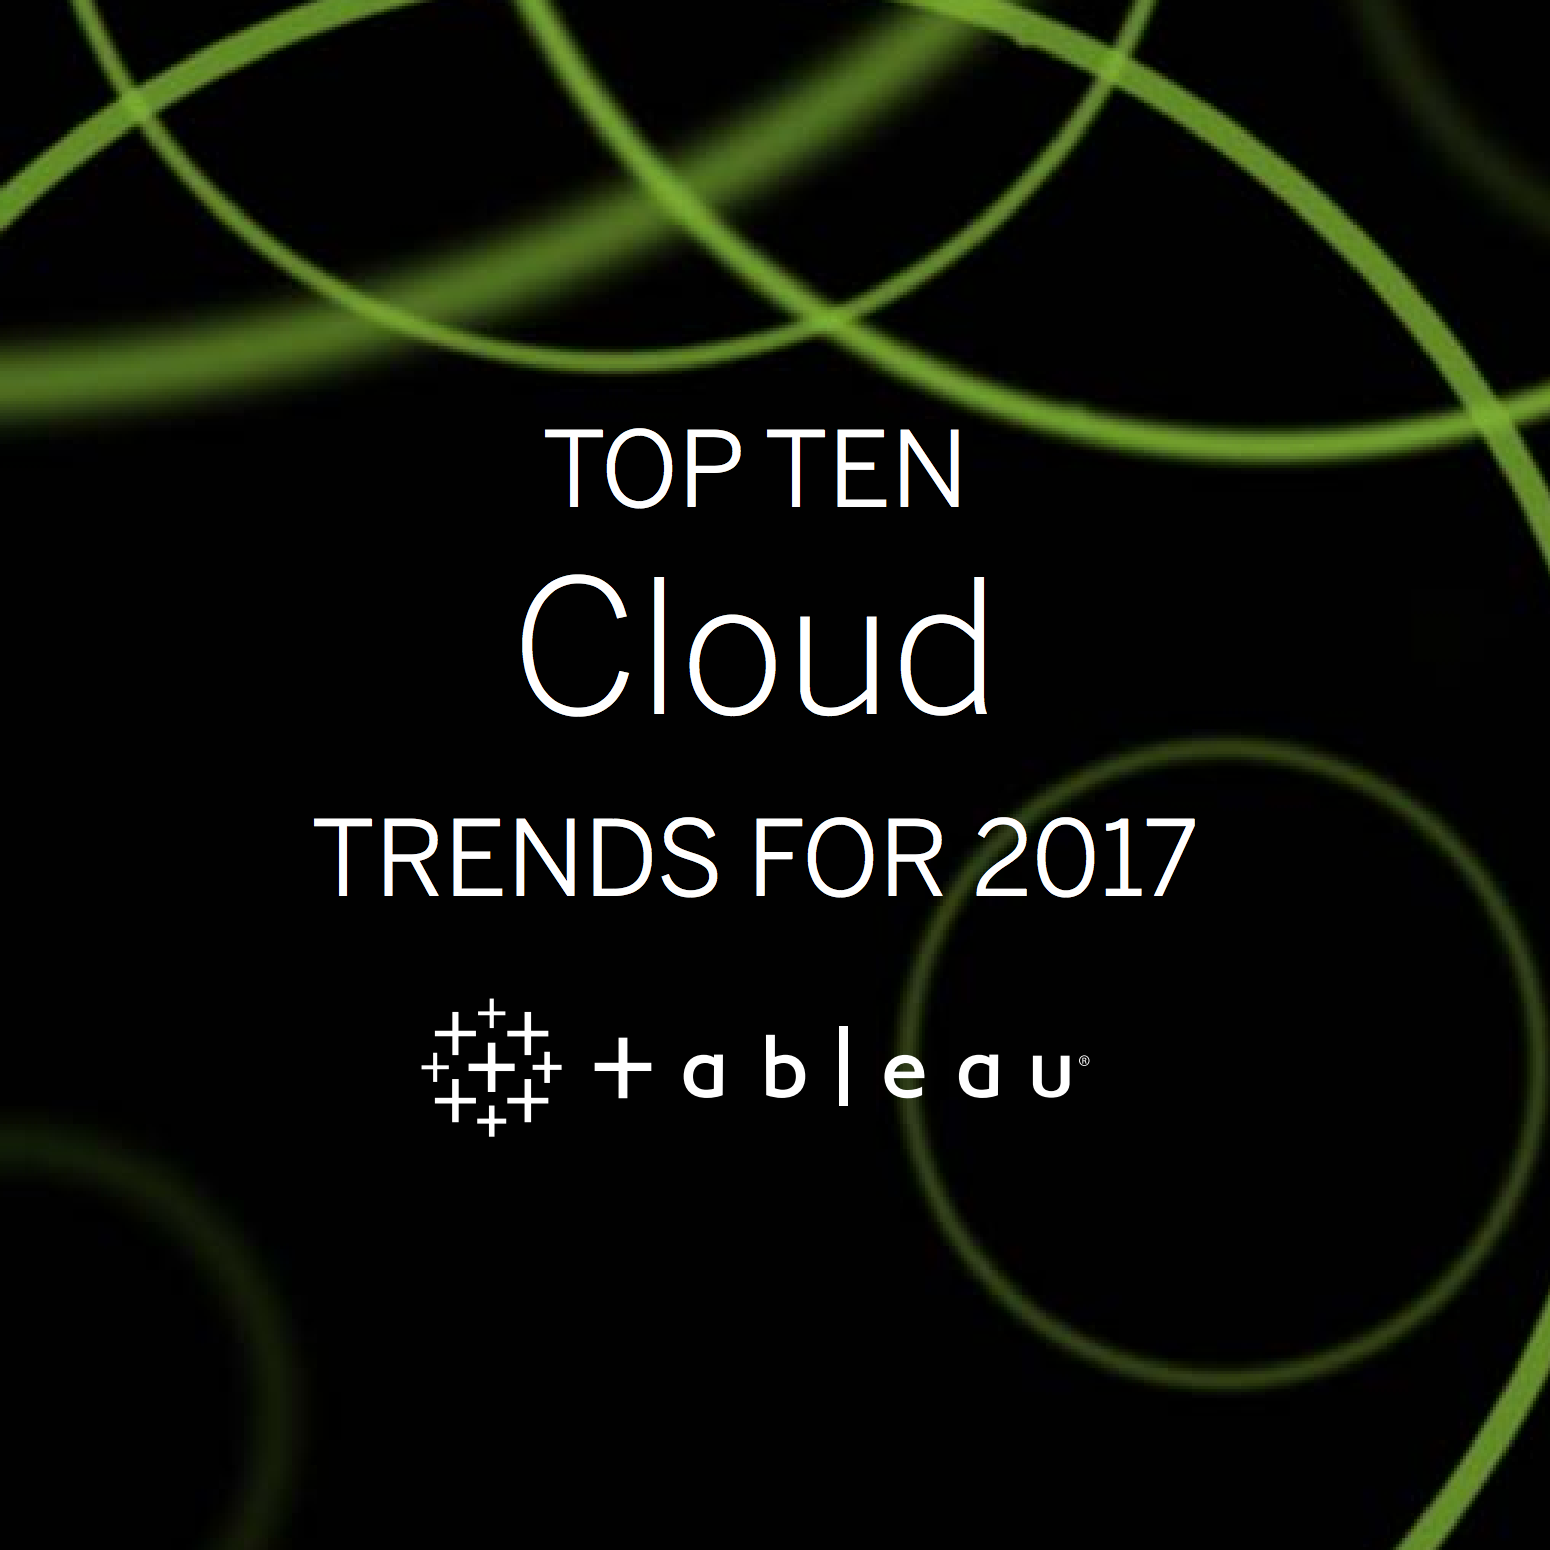 Image of 10 cloud trends shaping 2017